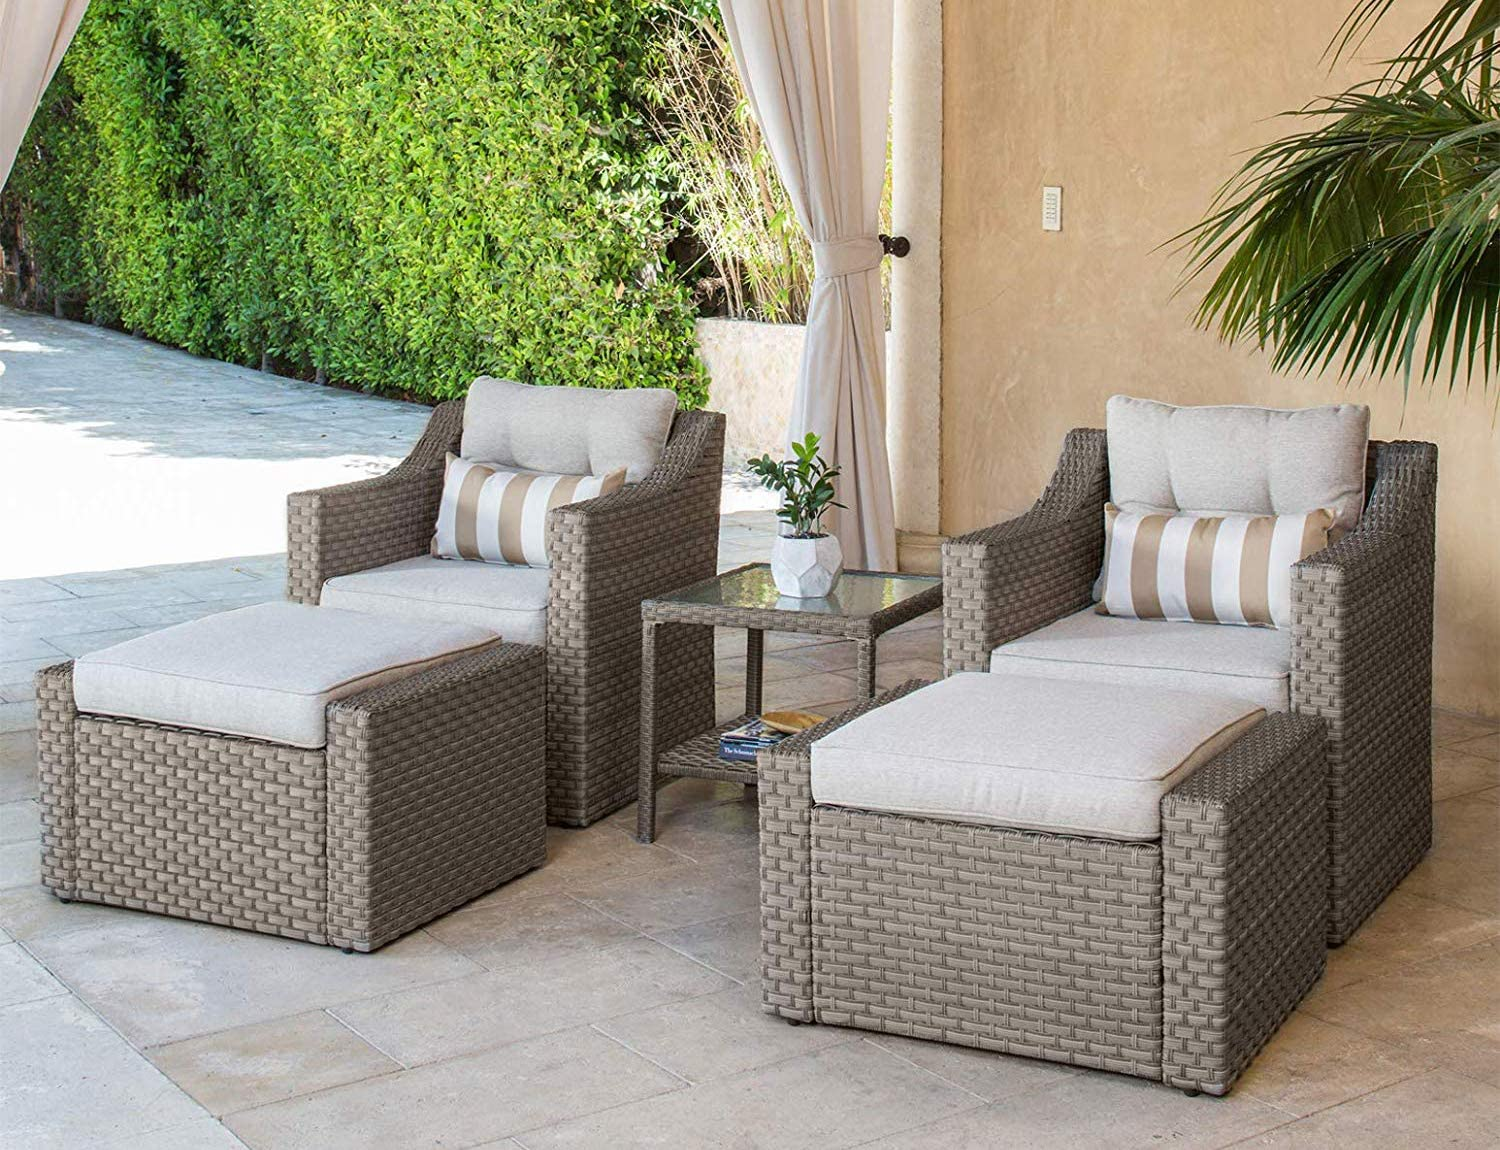 Solaura Patio Sofa Sets 5-Piece Outdoor Furniture Set Gray Wicker Lounge Chair u0026 Ottoman  sc 1 st  Amazon.com & Amazon.com: Ottomans - Patio Seating: Patio Lawn u0026 Garden